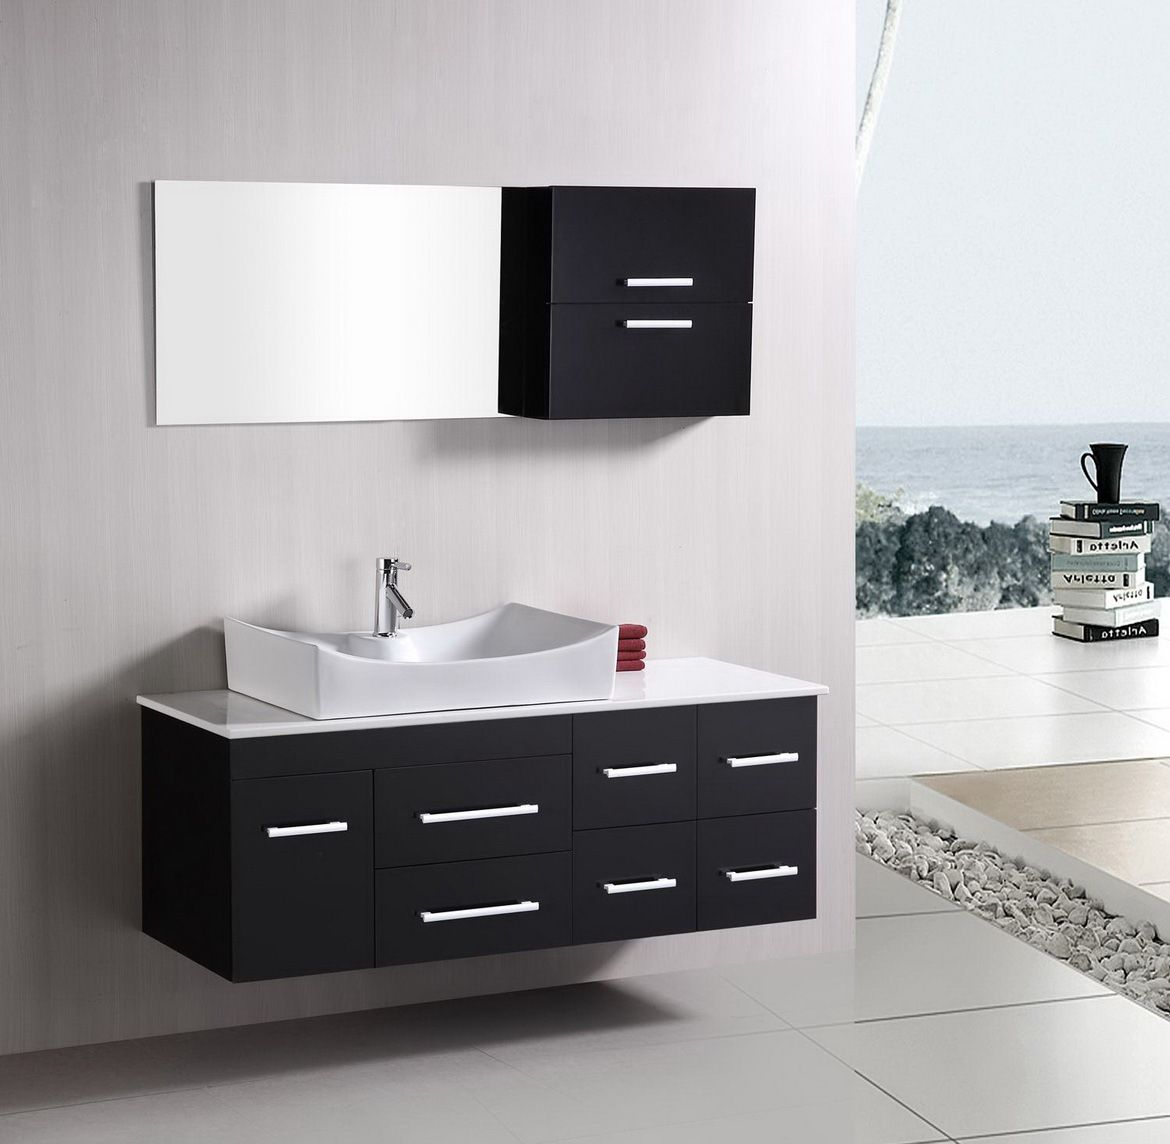 Bathroom Vanities Making Bathrooms A Place To Relax - Black mirrored bathroom cabinet for bathroom decor ideas